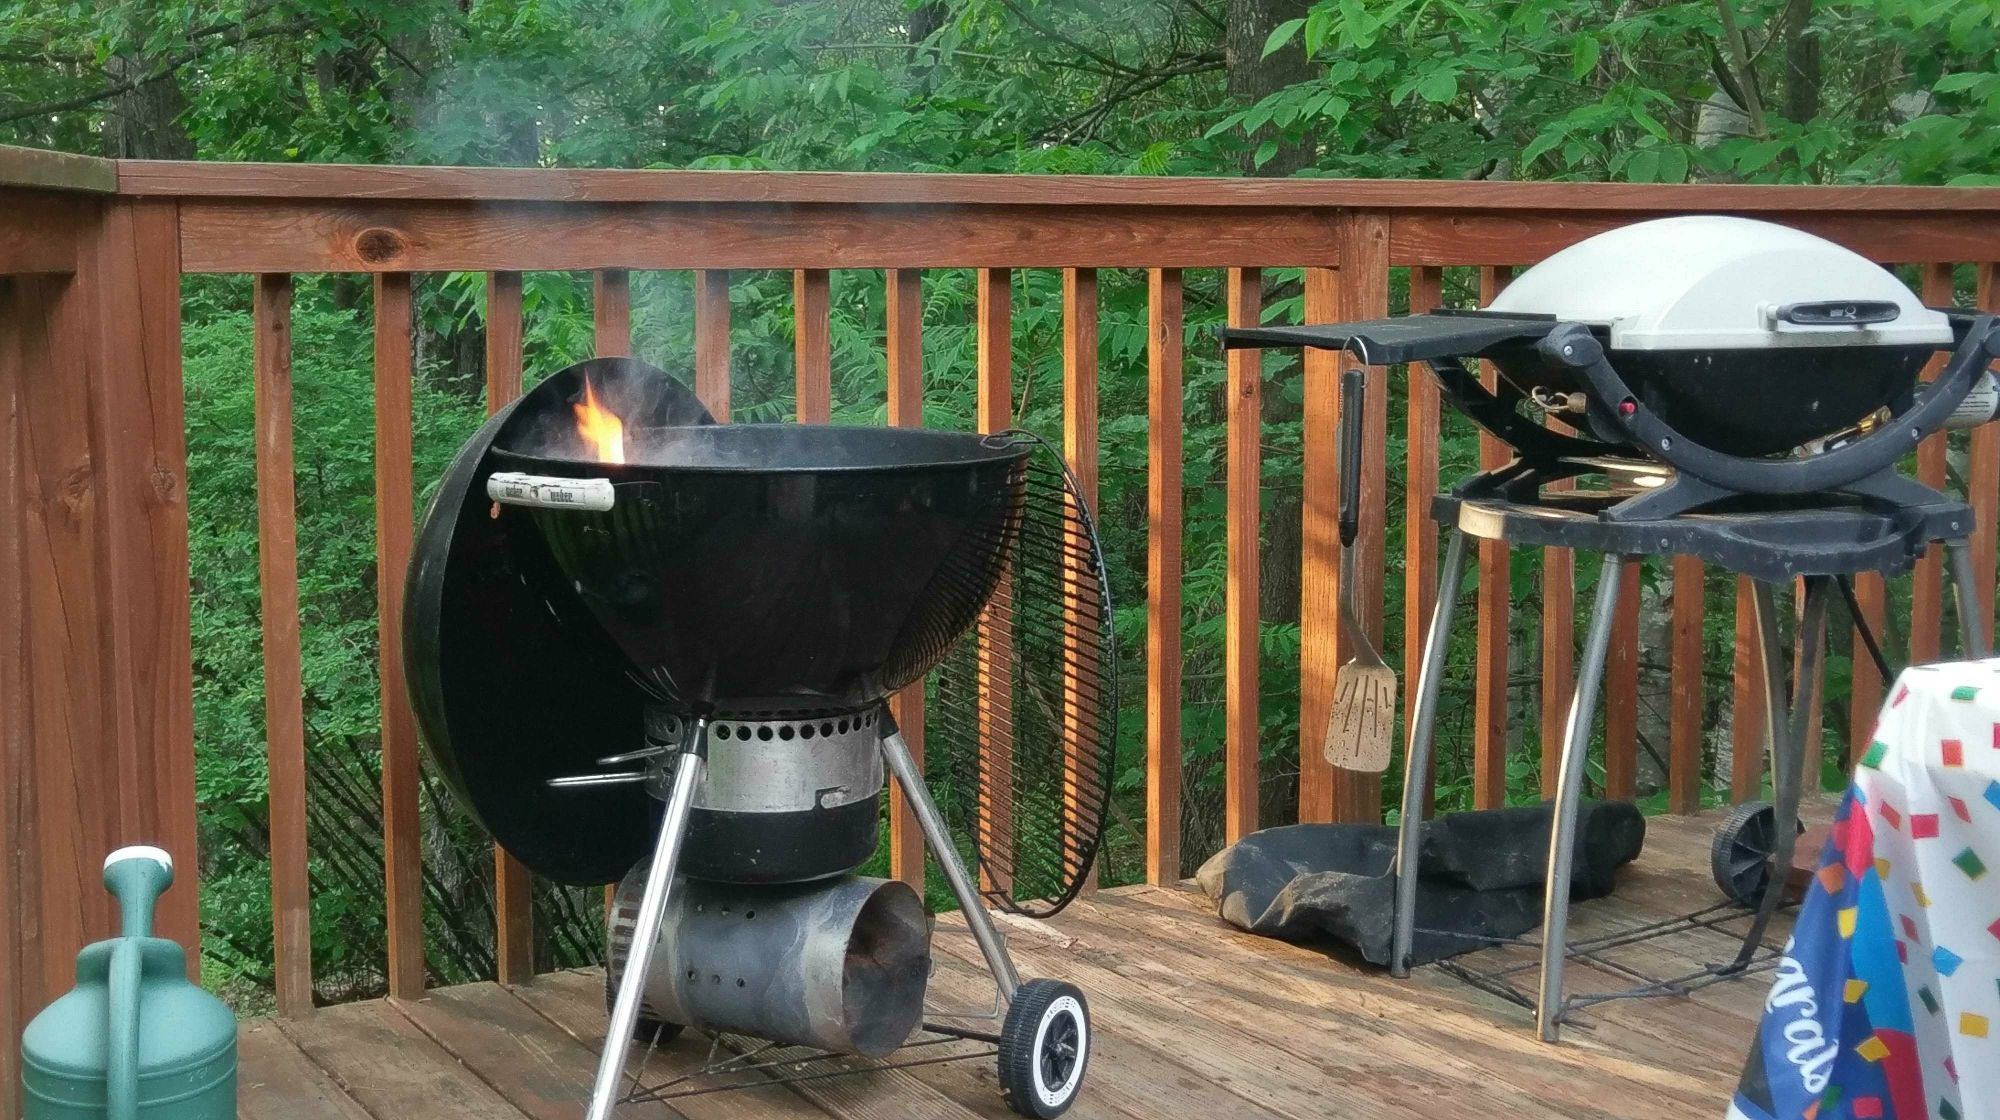 Outdoor Cooking smoking grilling barbecuing open spit etc